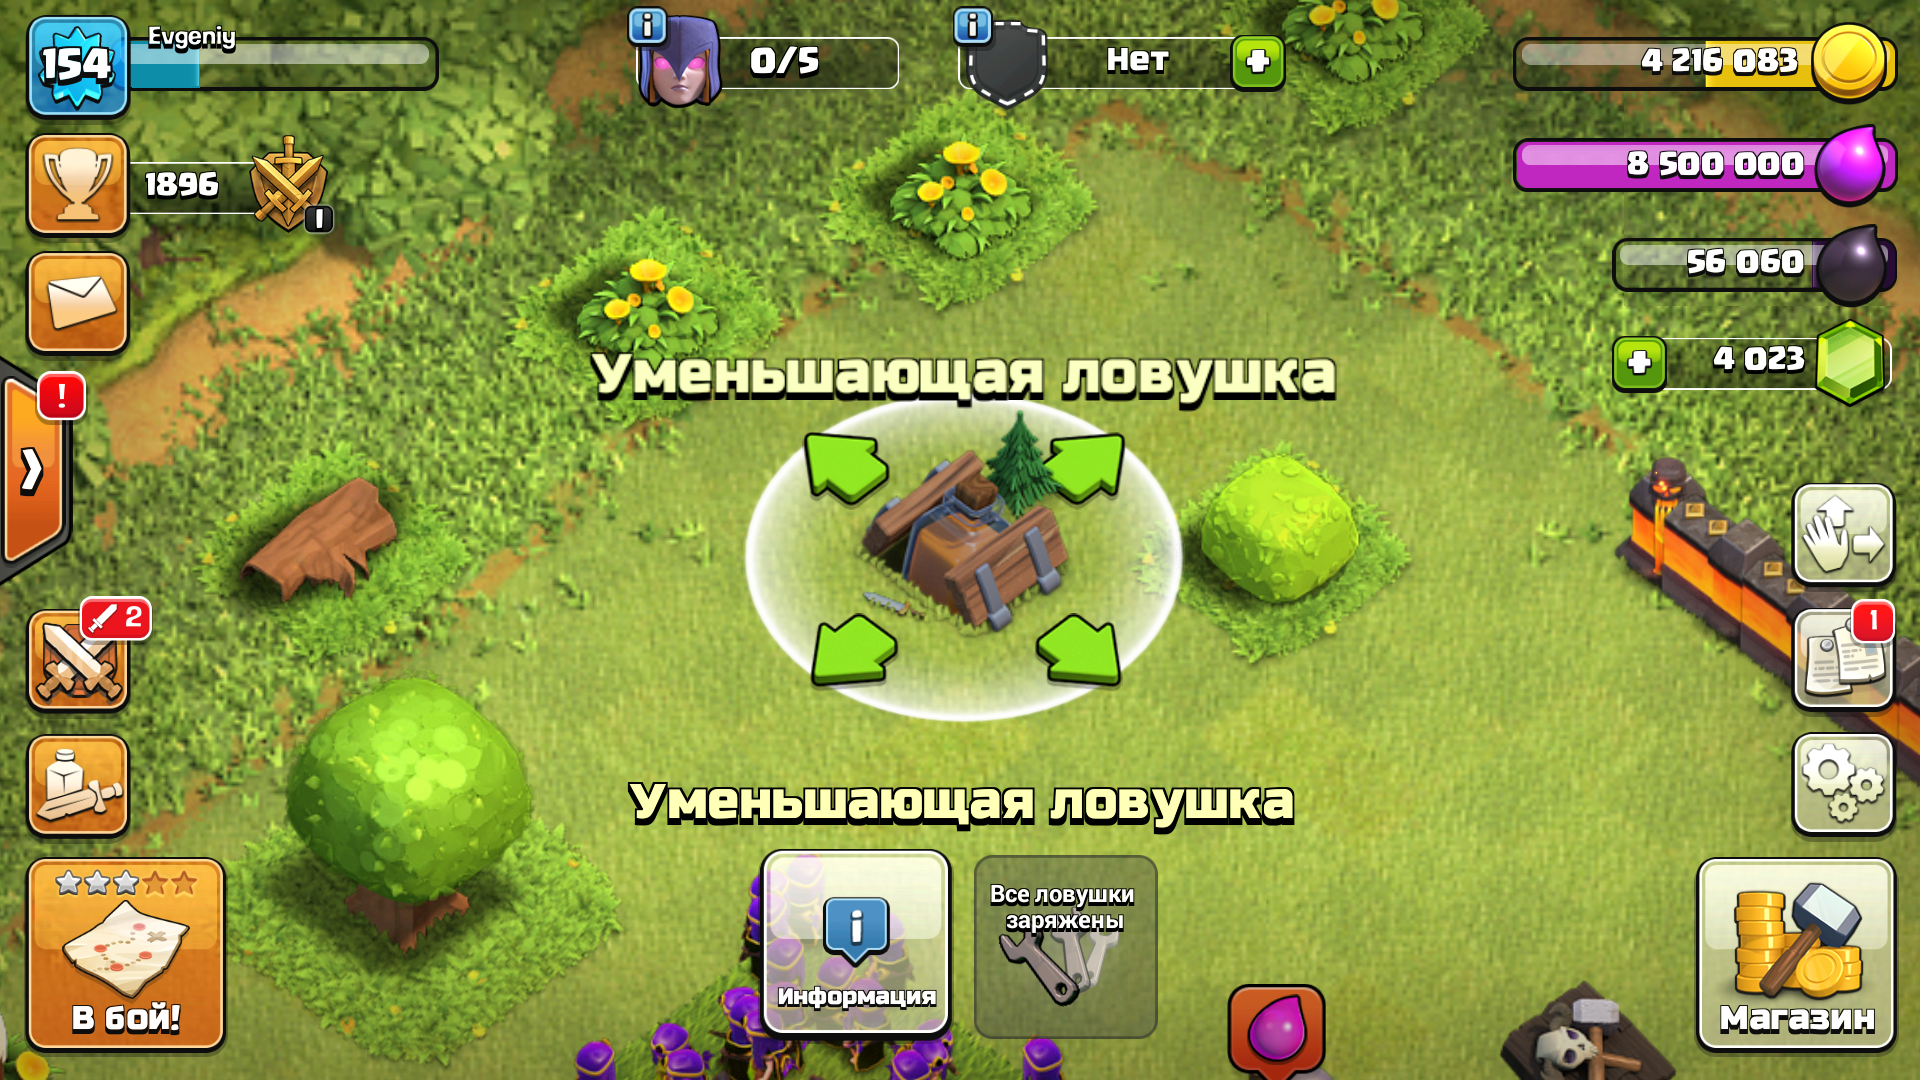 Уменьшающая ловушка в Clash of Clans на поле